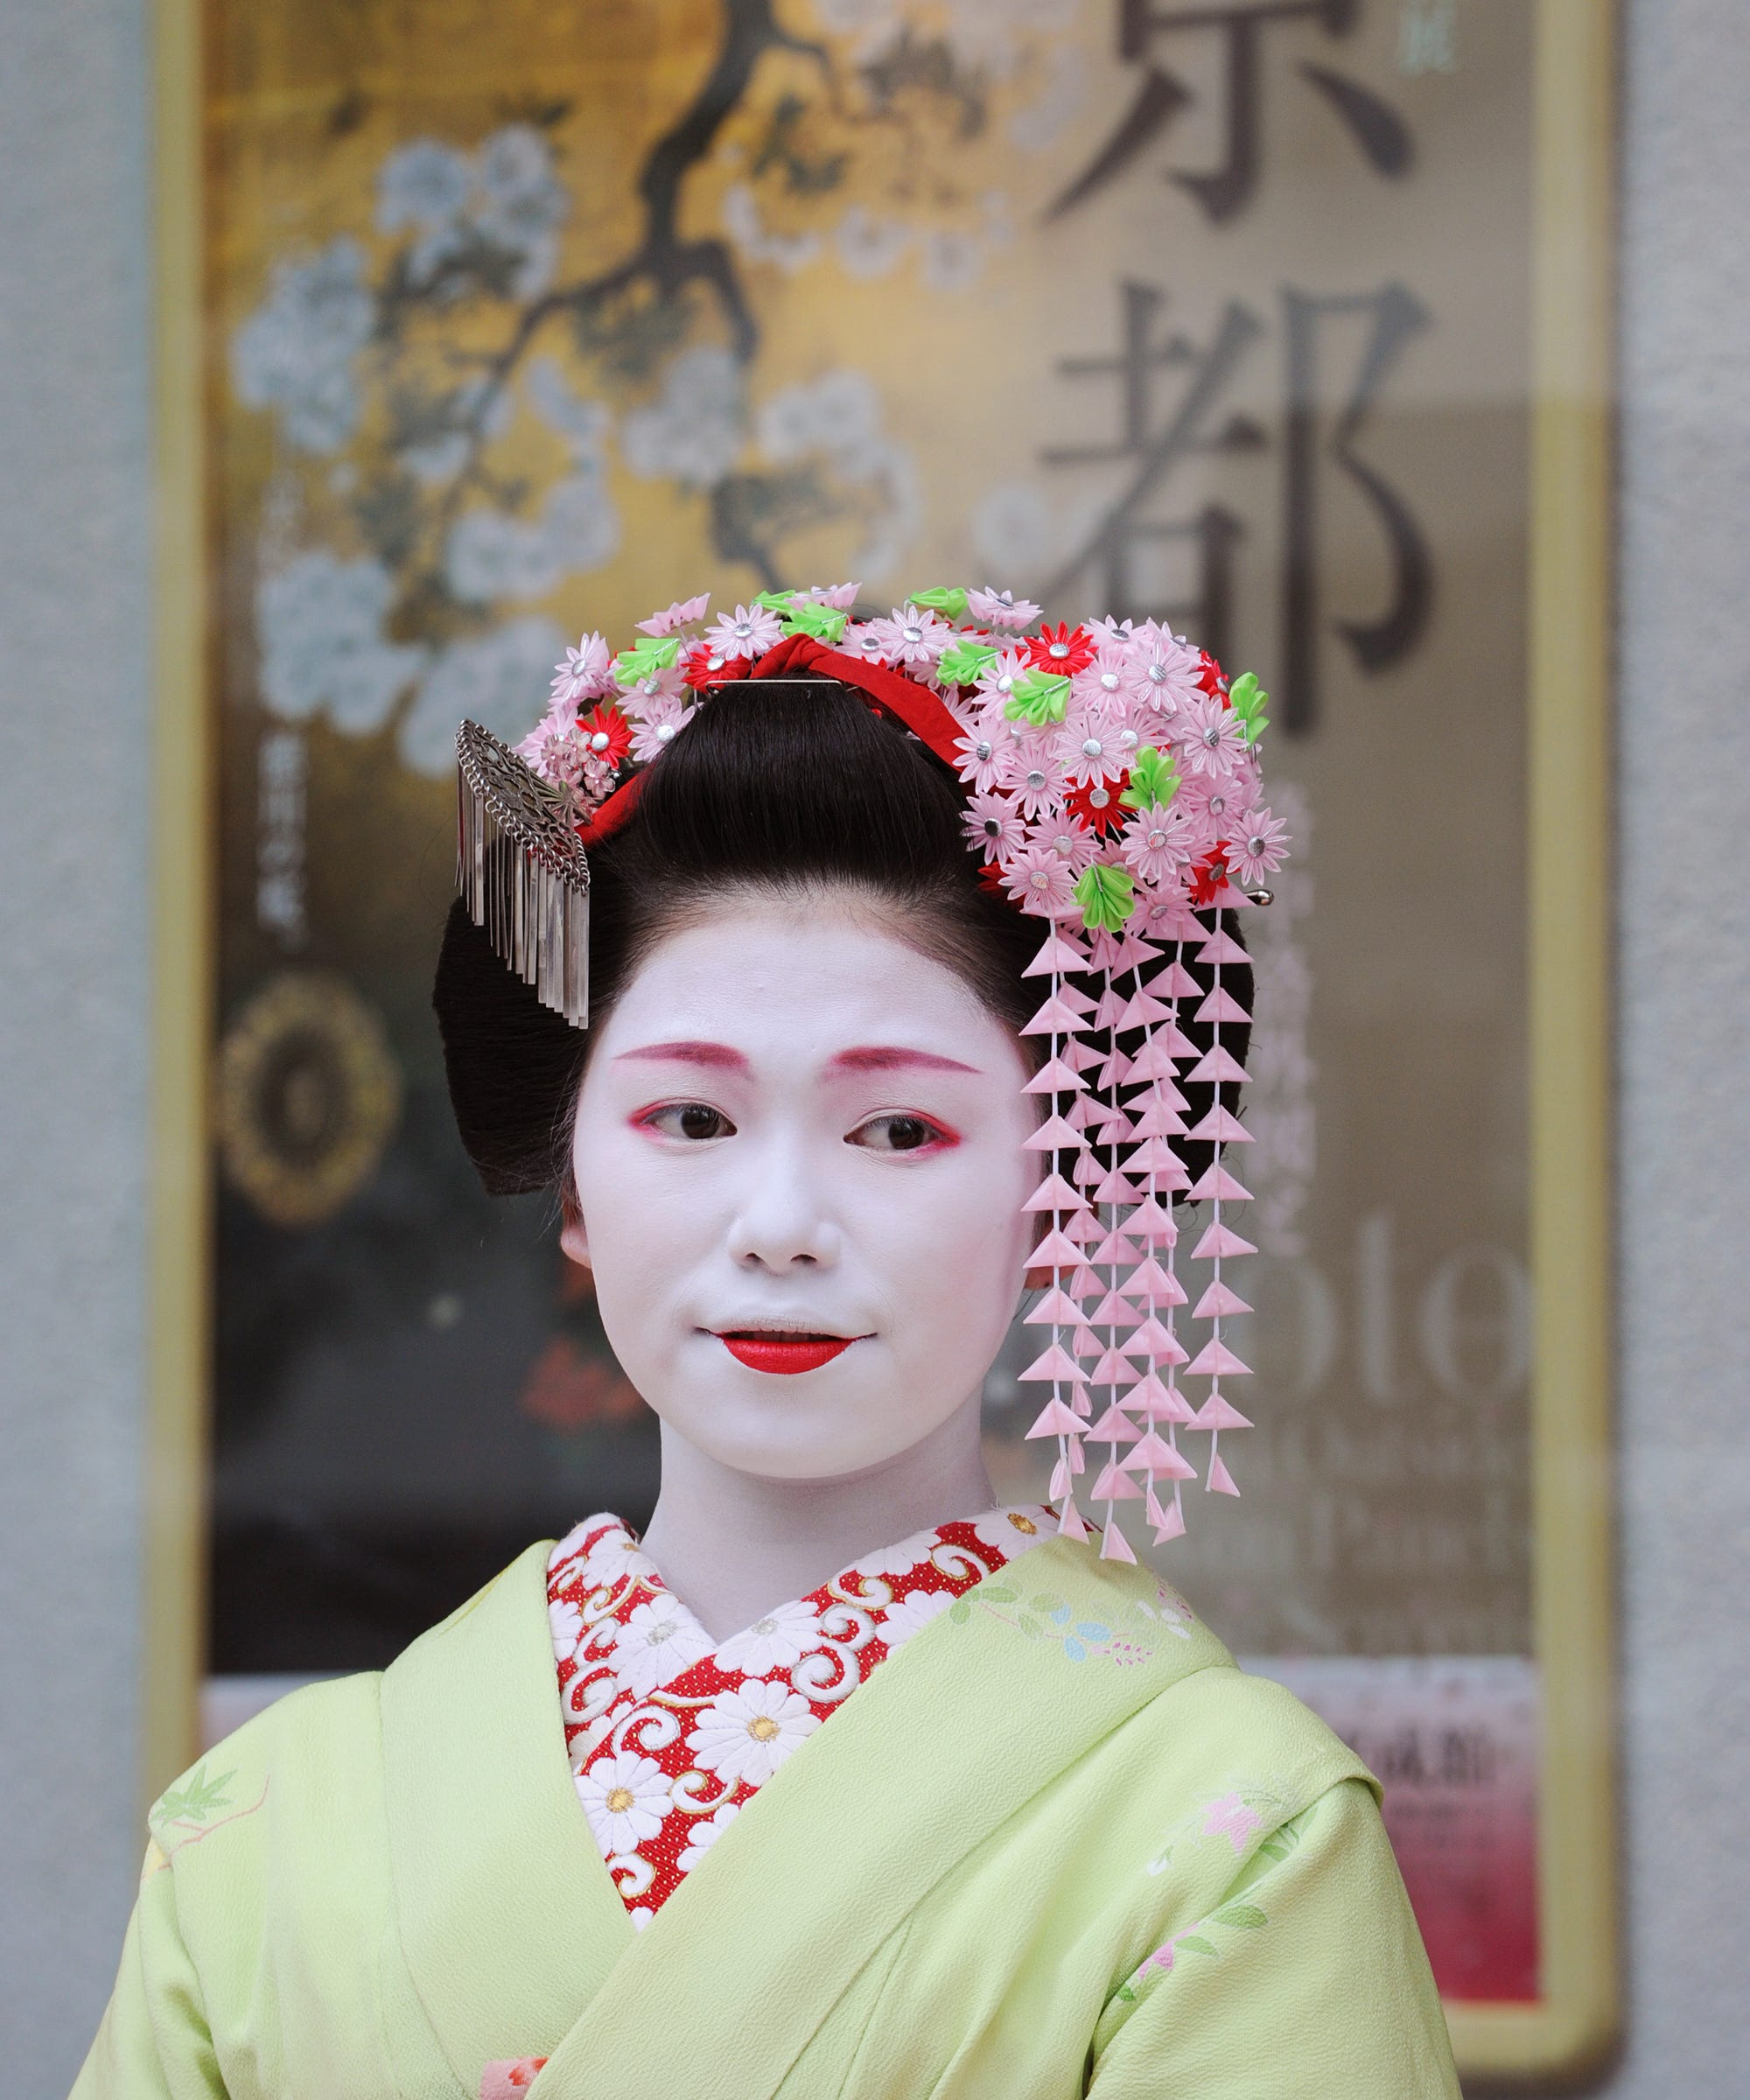 Confessions Of A Maiko, Japan's Geisha-In-Training